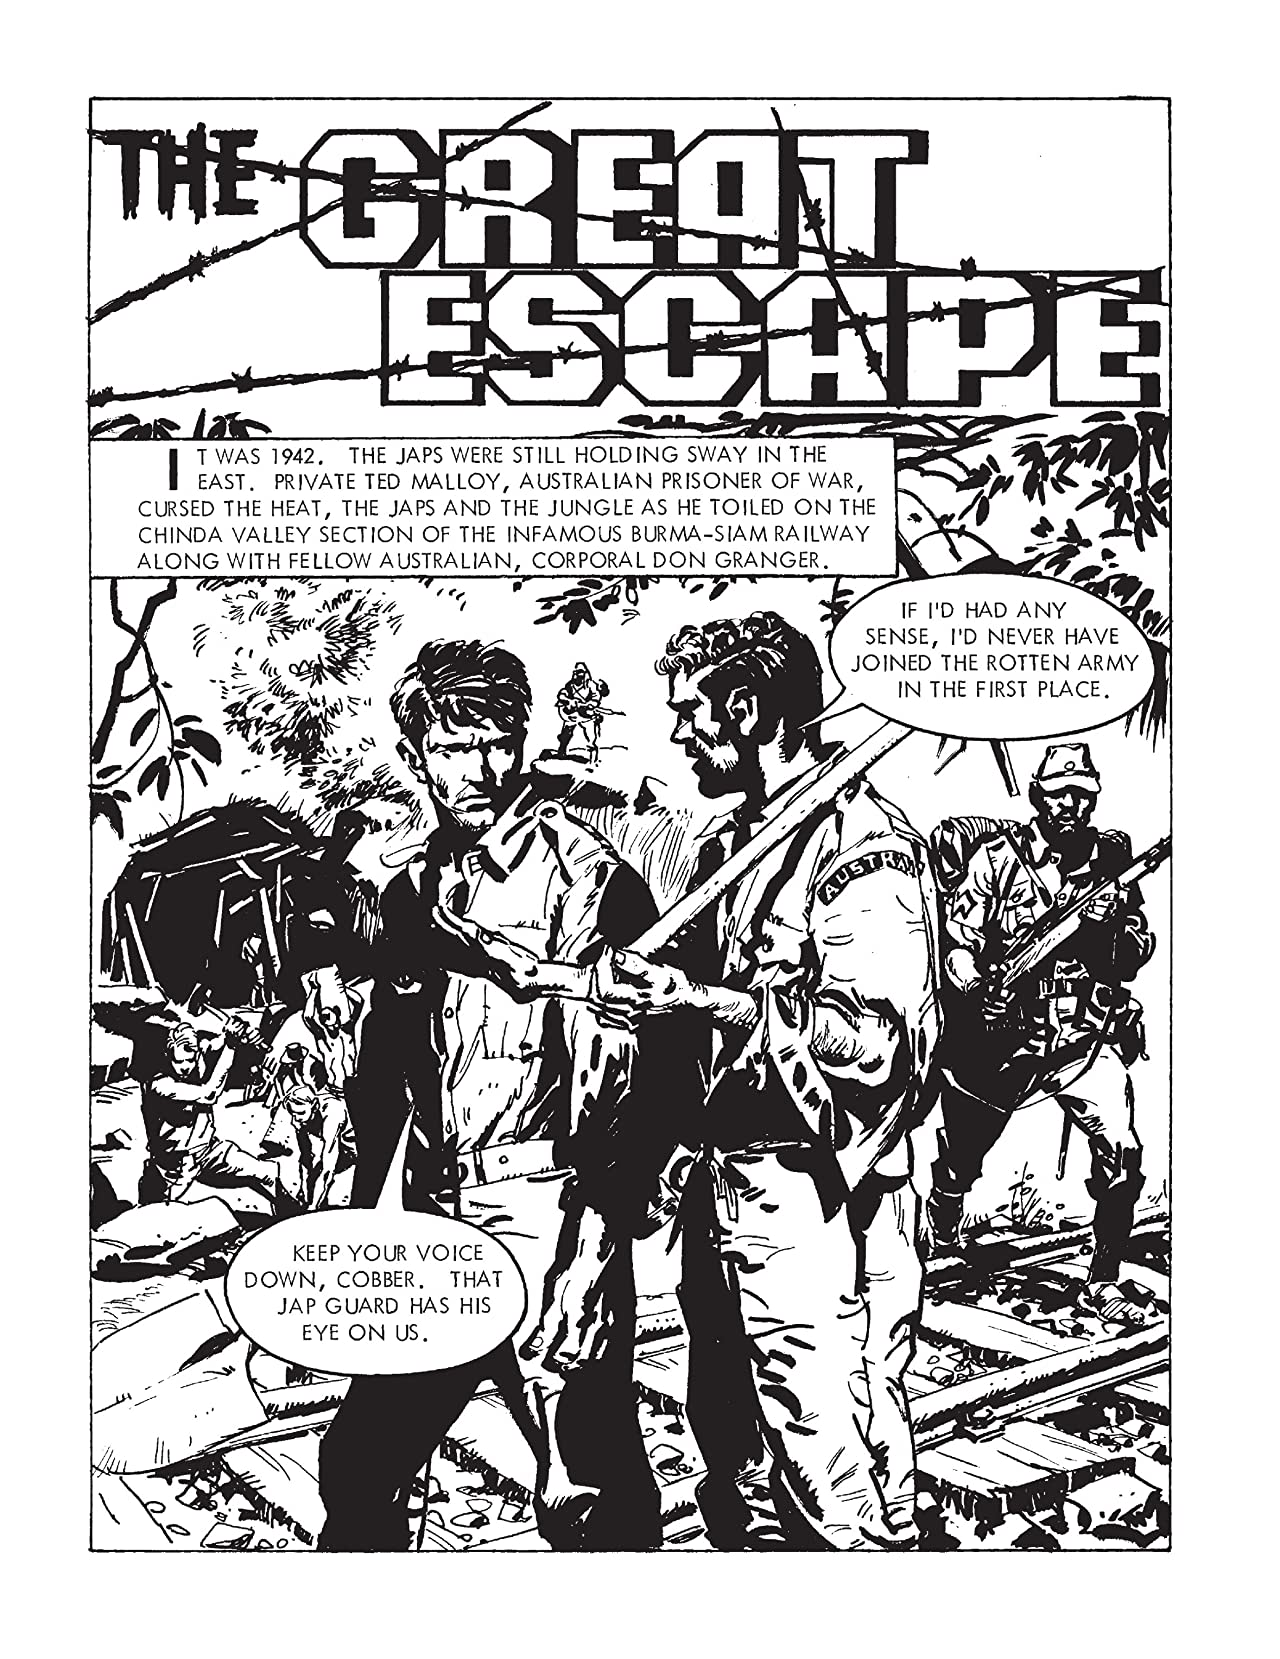 Commando #4896: The Great Escape